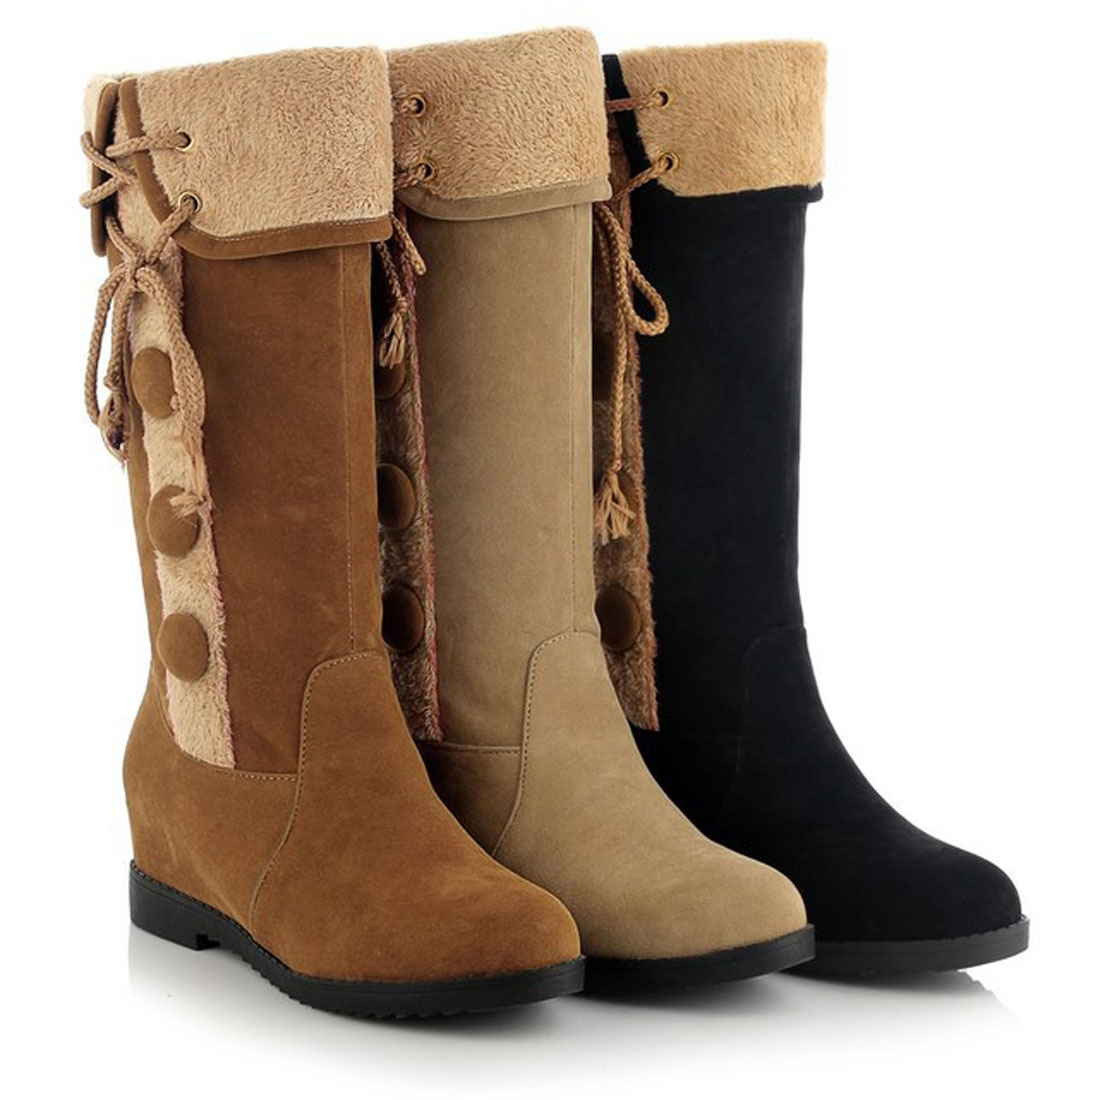 Classic Women Snow Boots Winter Knee High Boots Wedge Round Toe Faux Suede Fashion  fur female warm boots Women's Winter Shoes doratasia big size 34 43 women half knee high boots vintage flat heels warm winter fur shoes round toe platform snow boots